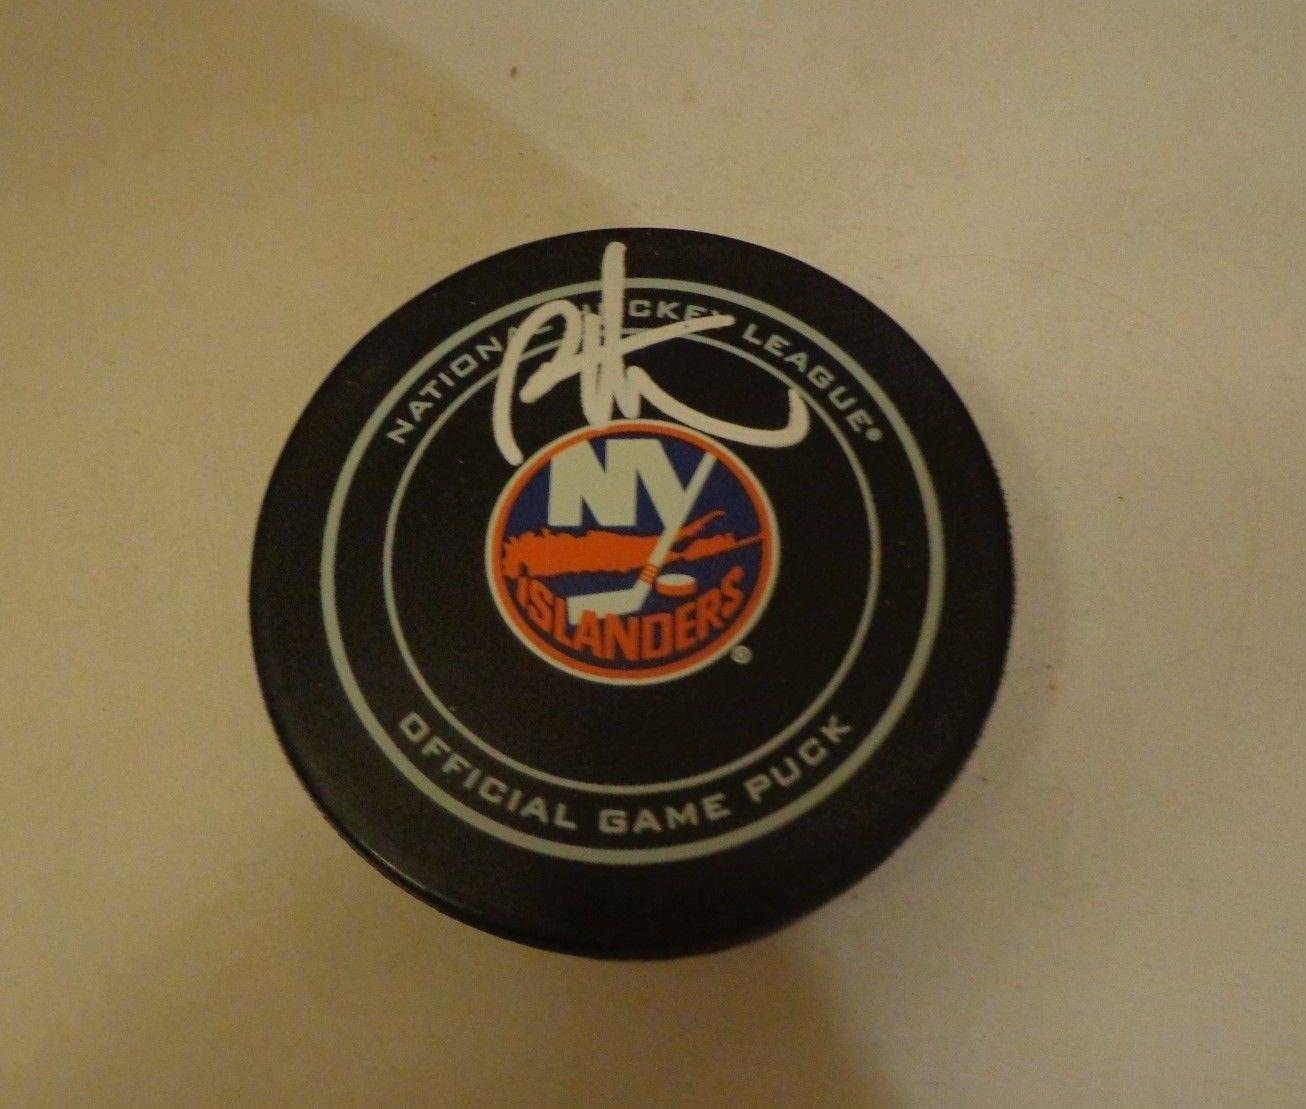 Bryan Trottier Signed Hockey Puck - Official HOF - Autographed NHL Pucks